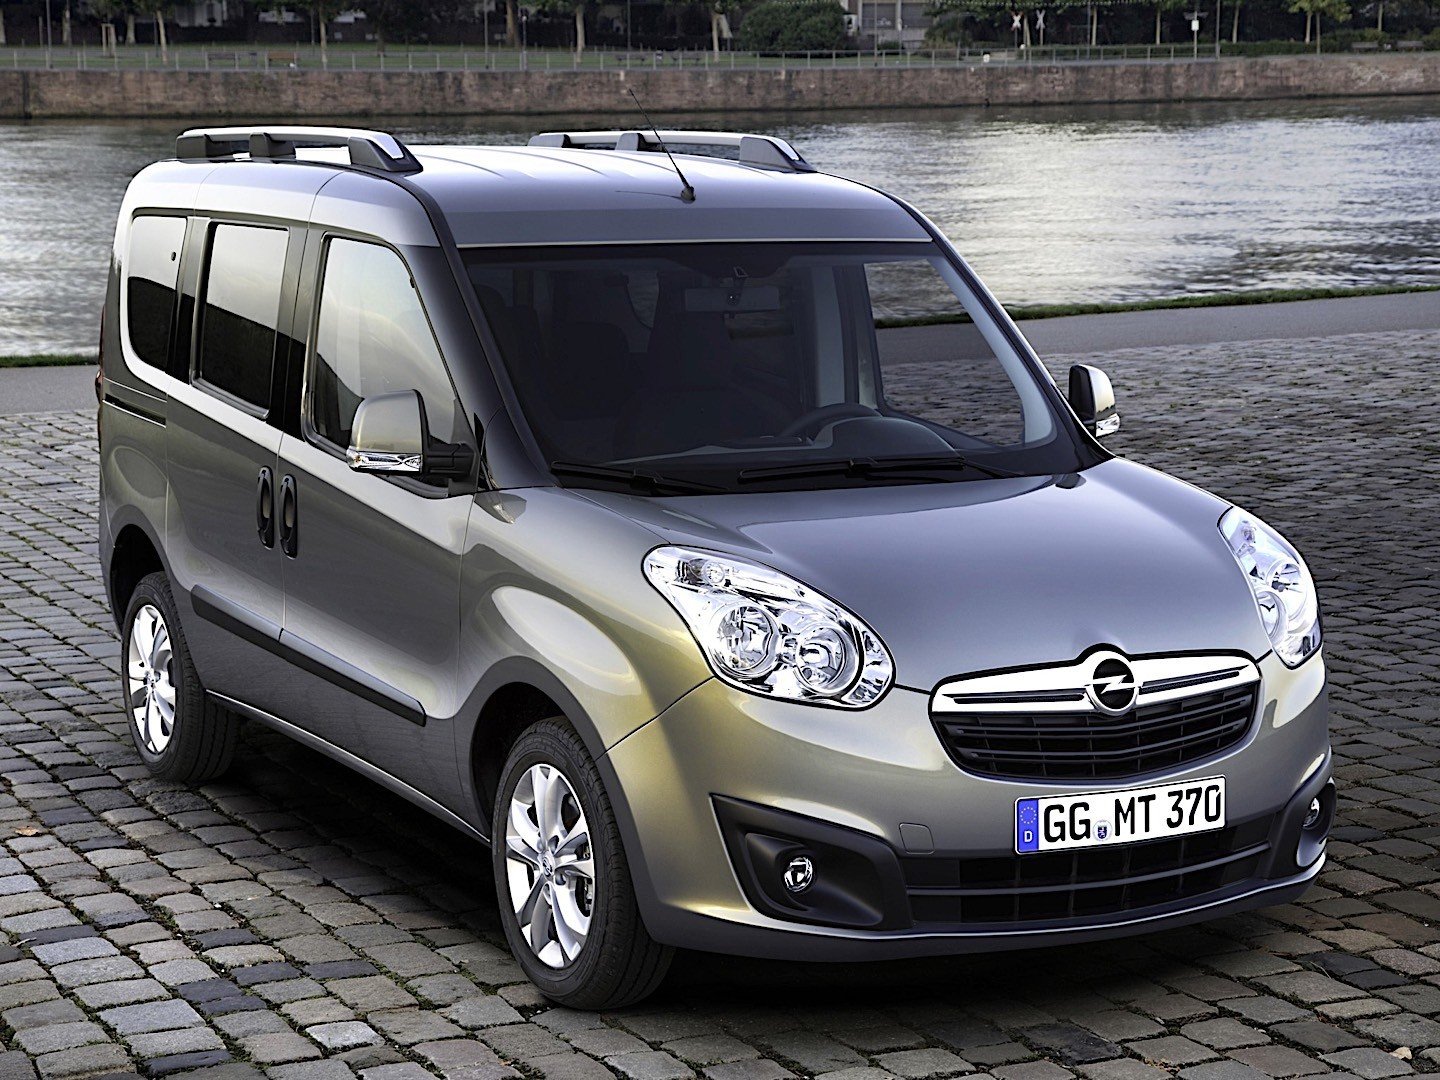 opel combo specs photos 2011 2012 2013 2014 2015 2016 2017 2018 autoevolution. Black Bedroom Furniture Sets. Home Design Ideas